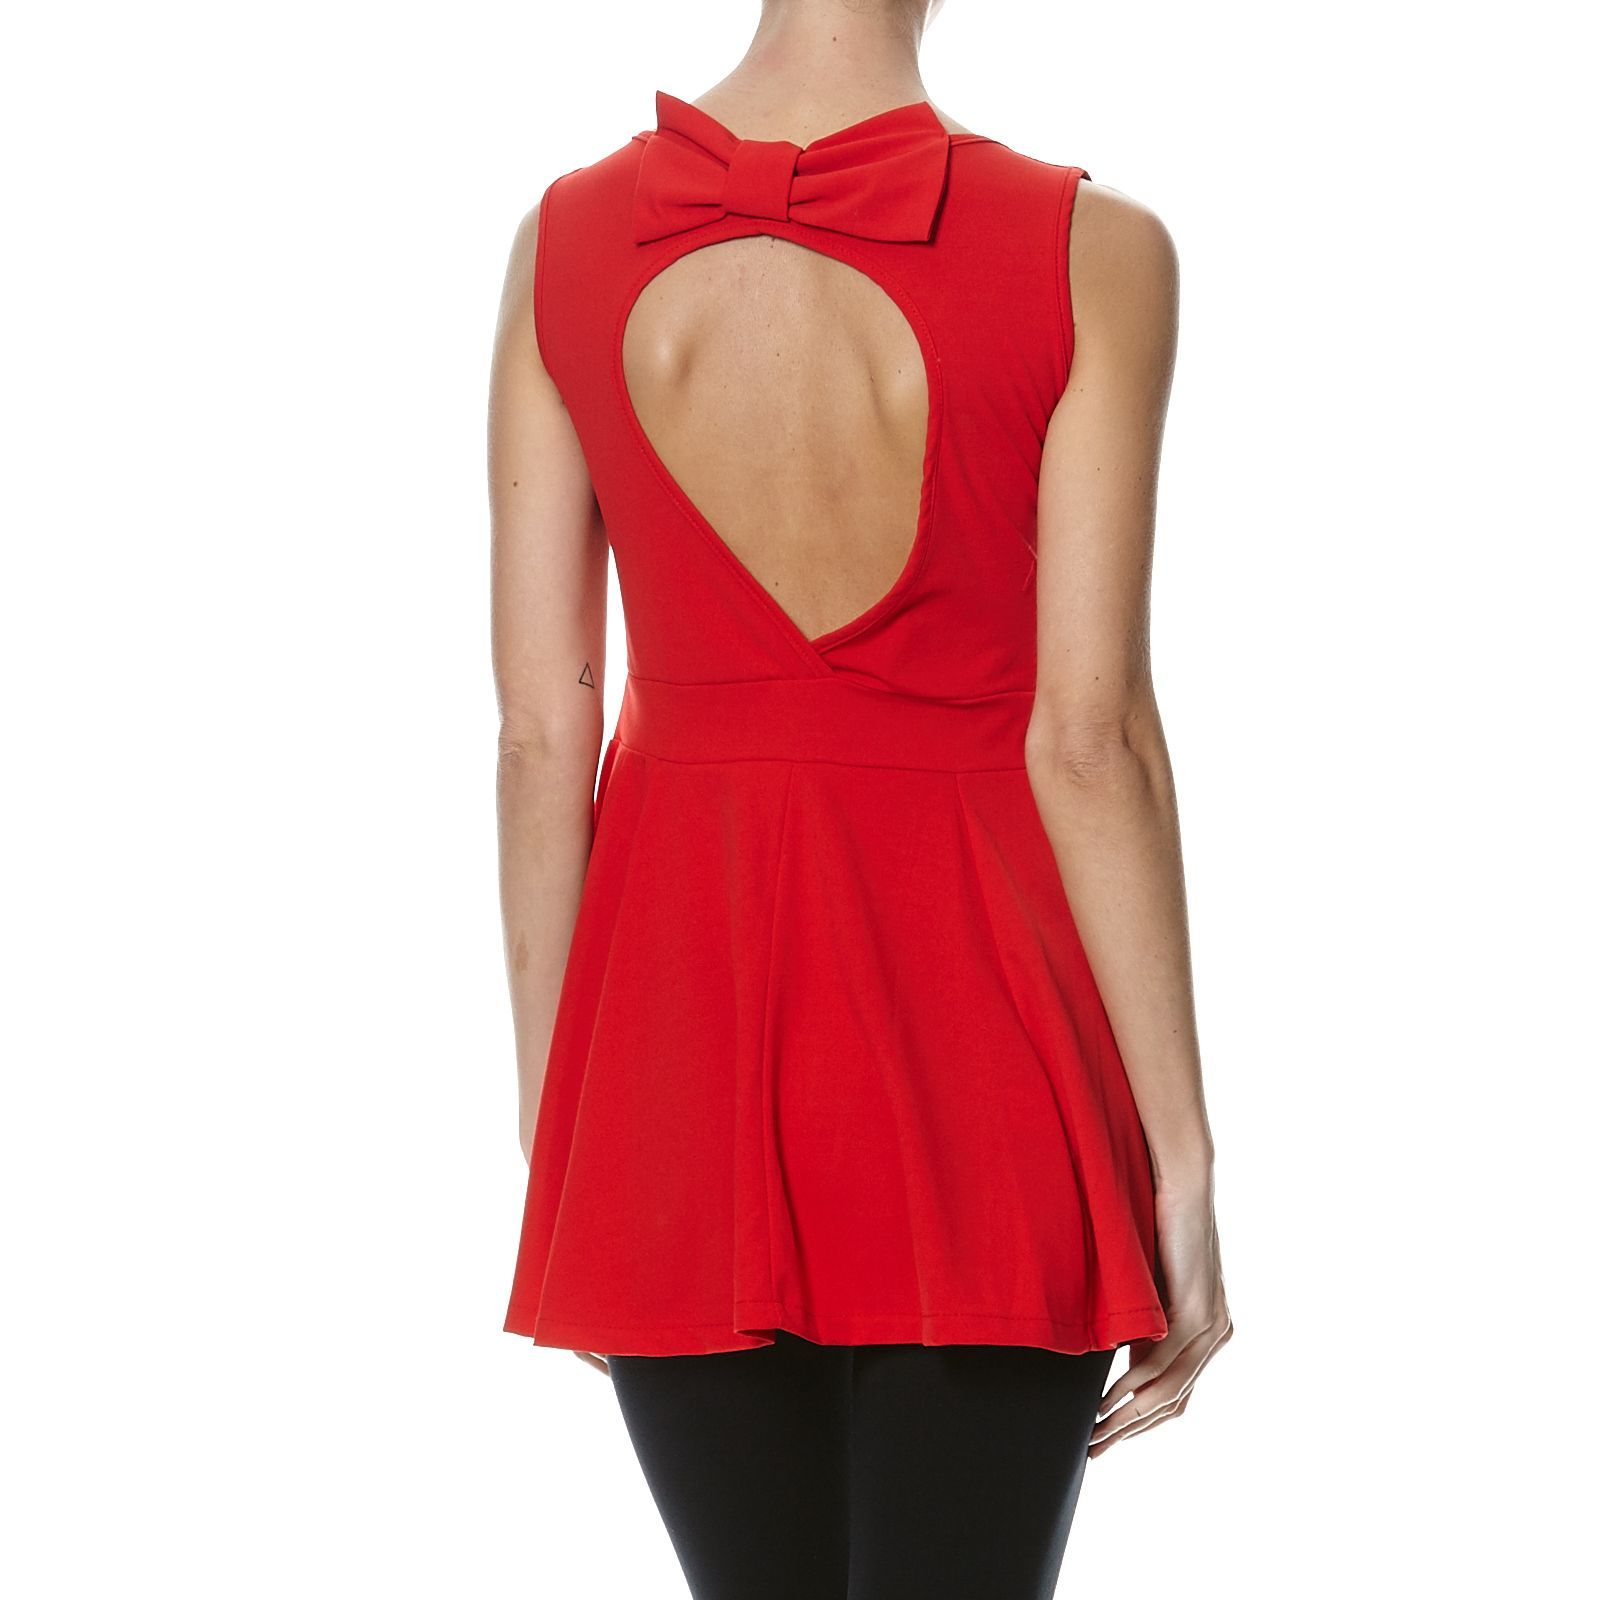 Le dressing d Alisson Robe patineuse - rouge   BrandAlley ed5ec9f941c2